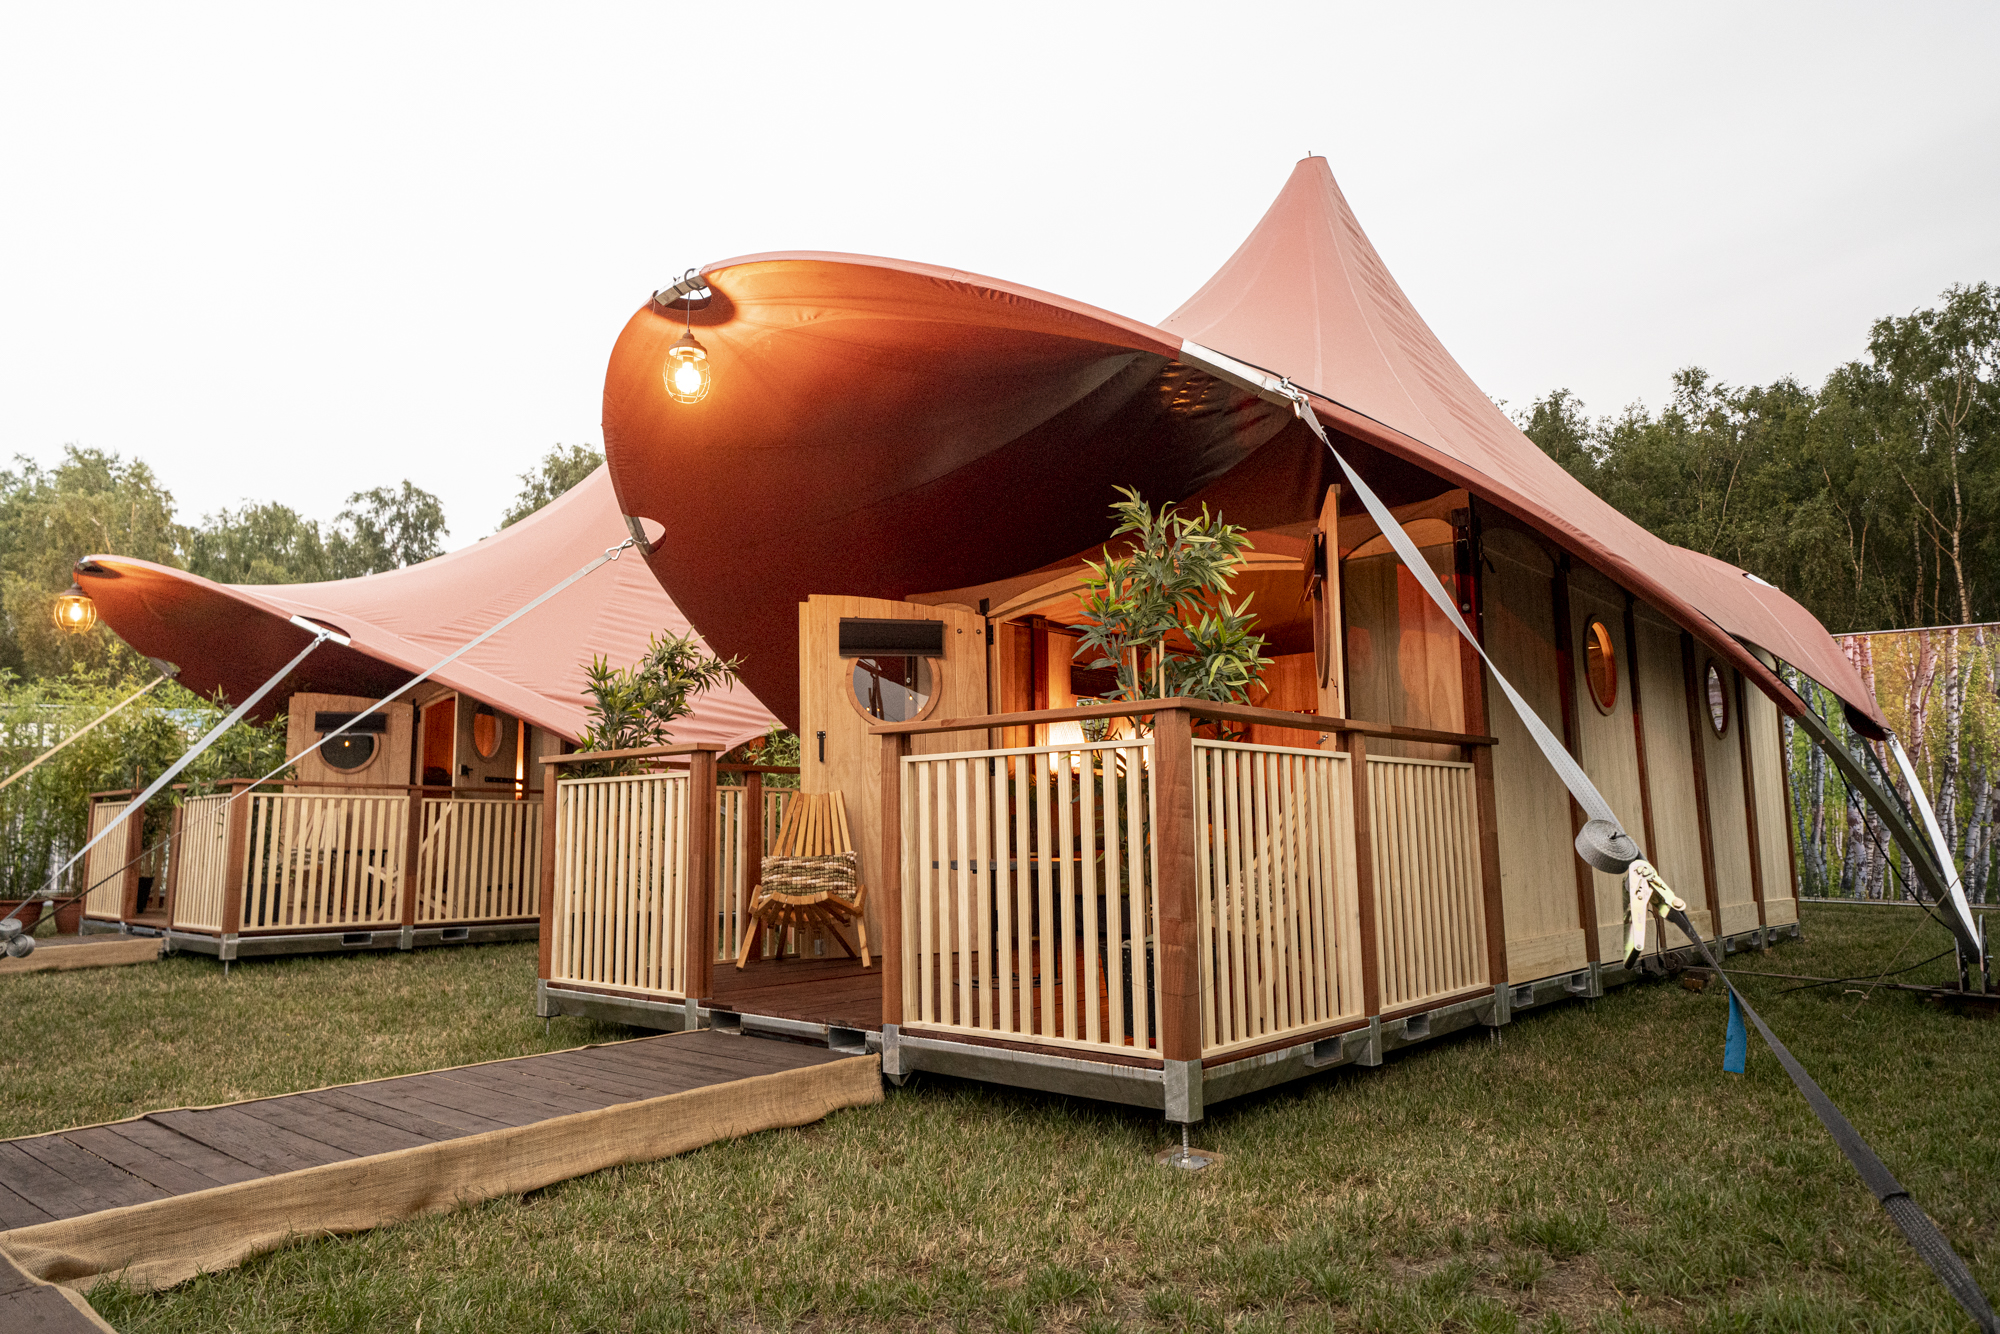 Dormer Cabin Campsolutions Pop-up Glamping